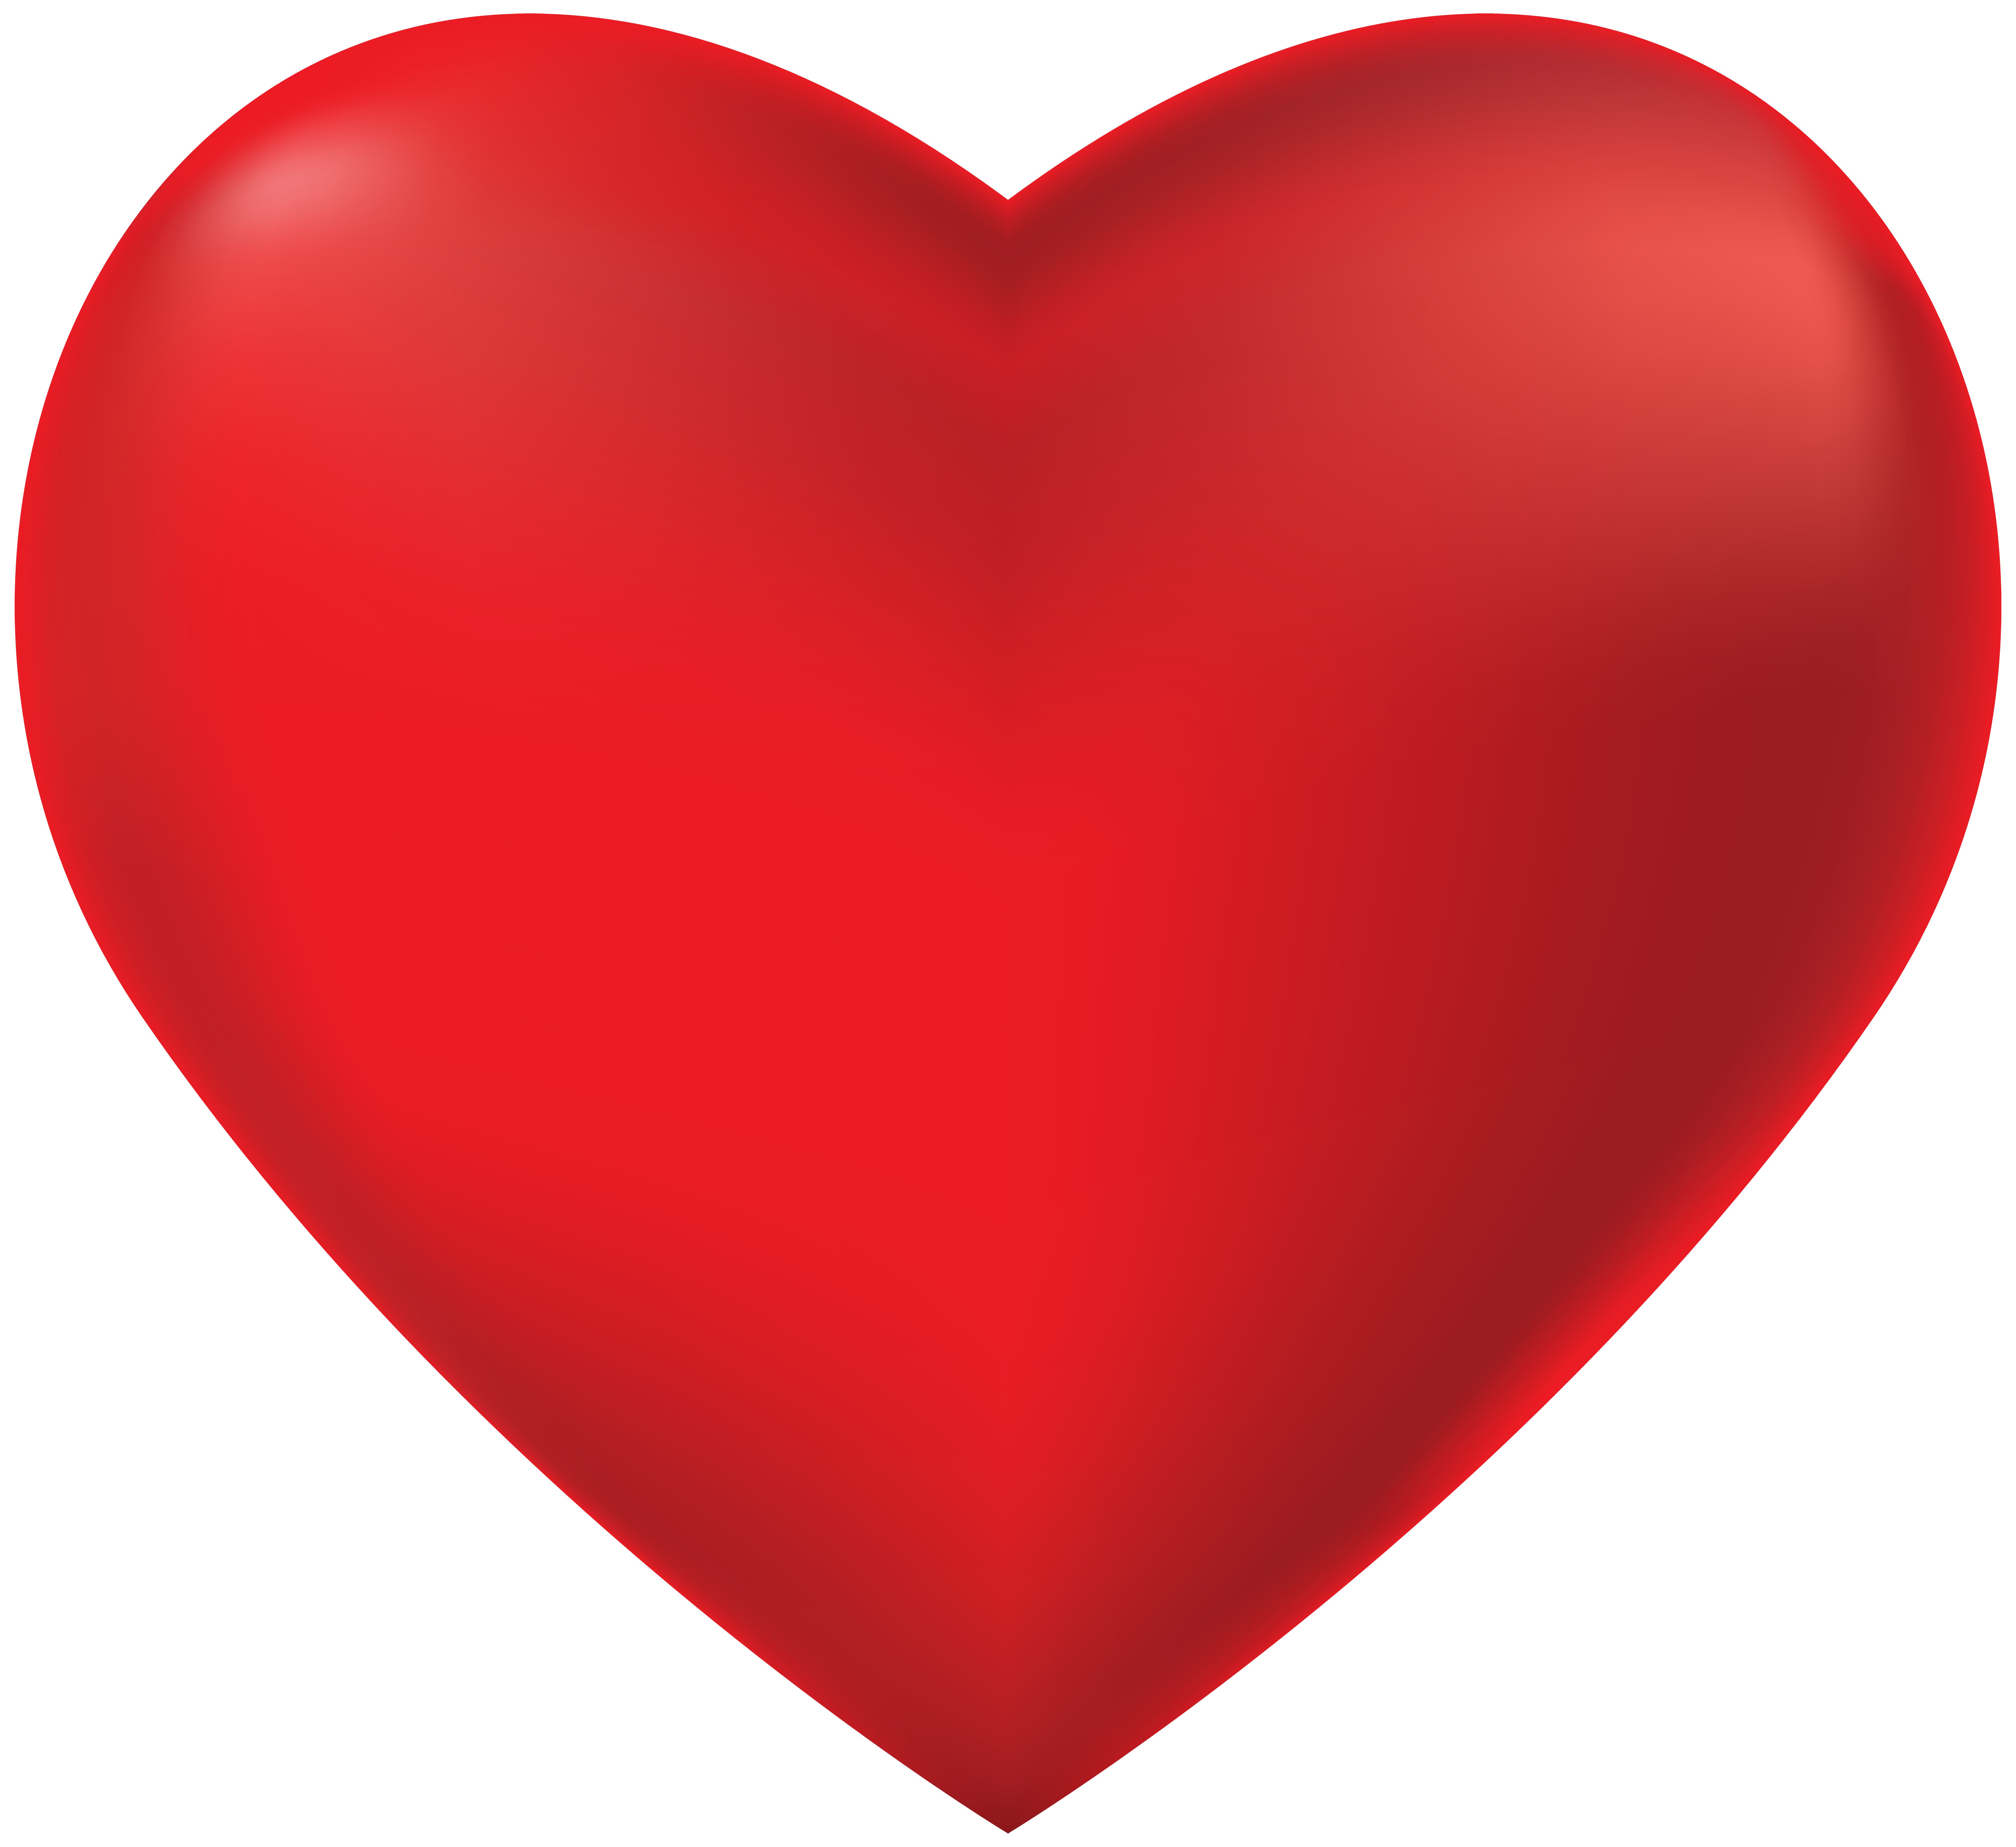 Download High Quality clipart heart transparent background.